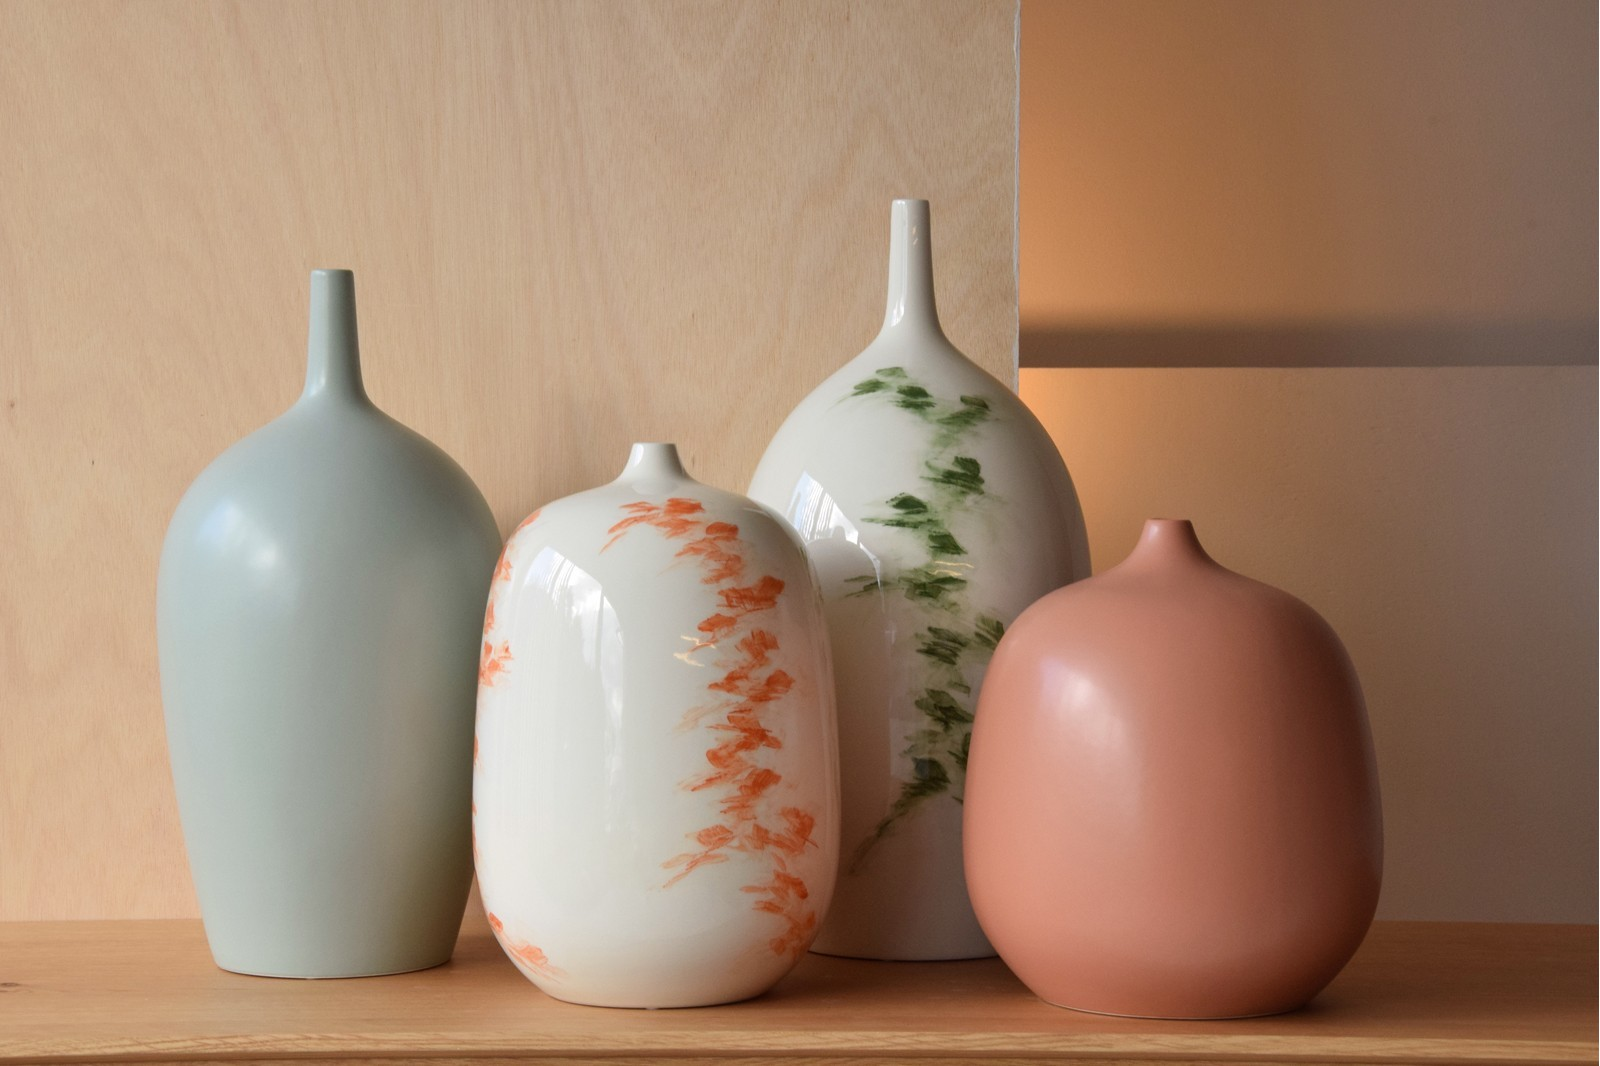 GREEN COLLECTION: HAND-PAINTED CERAMIC VASES